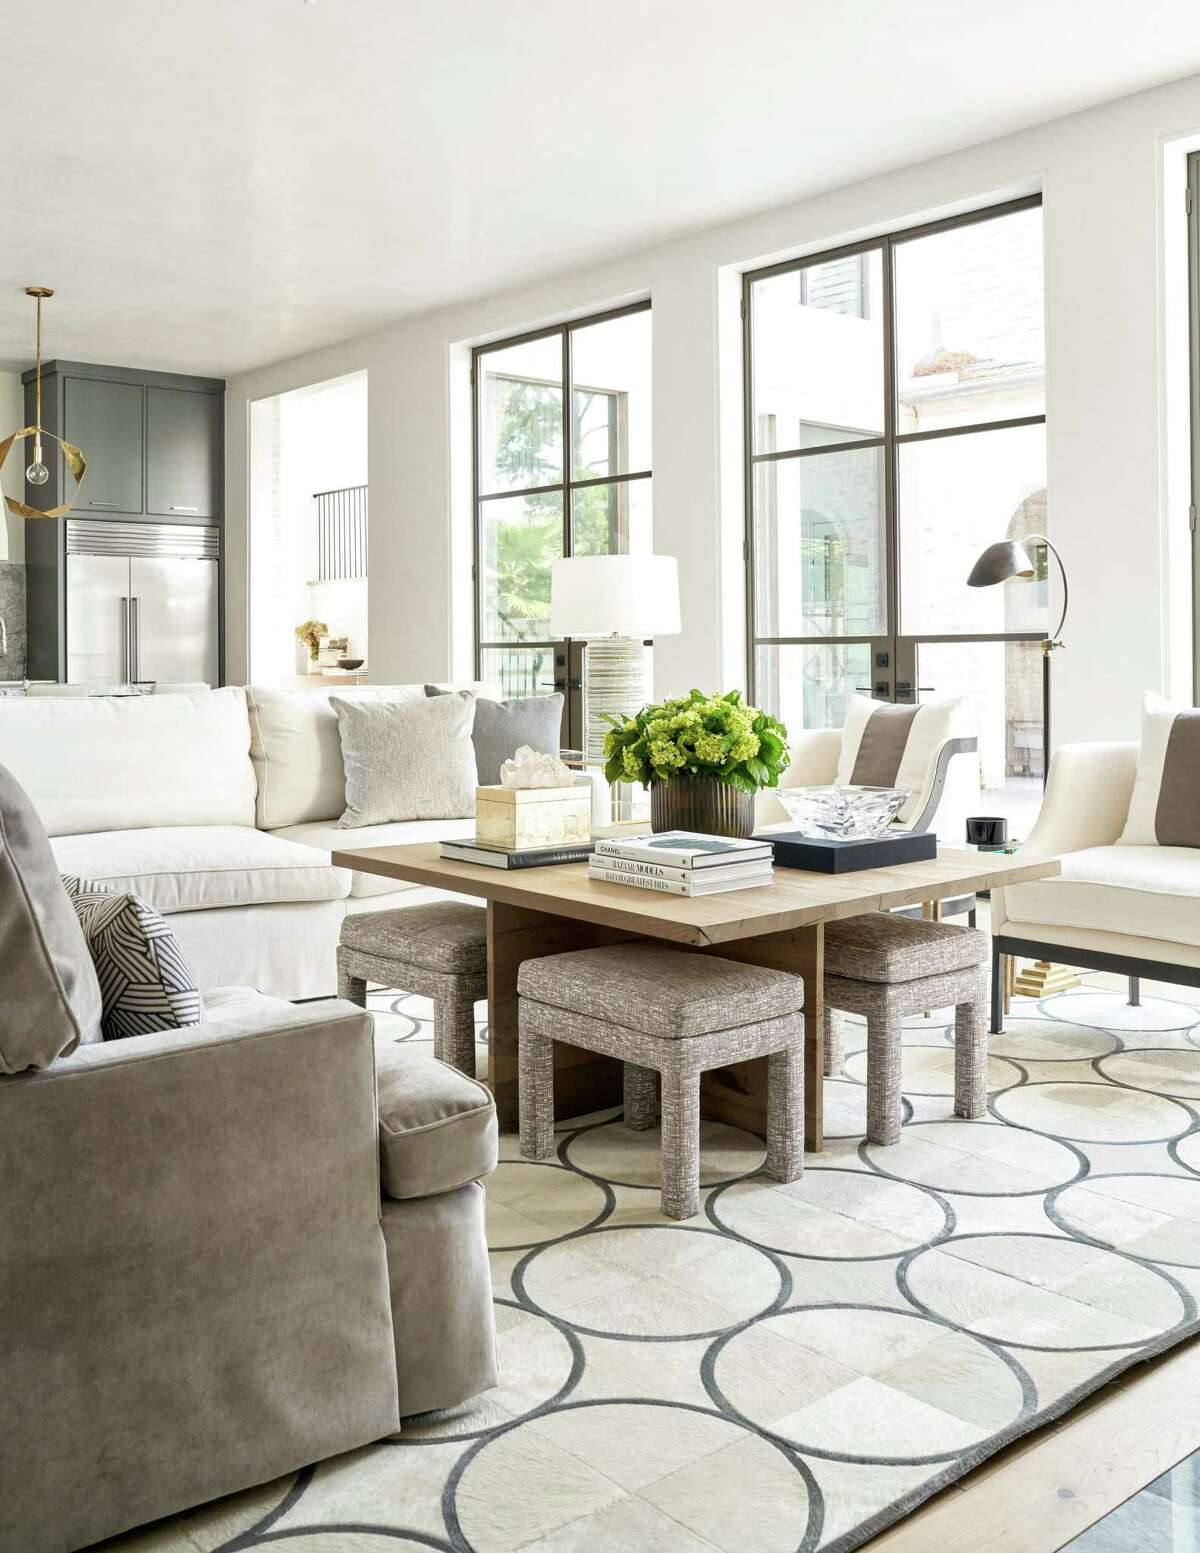 Furniture in creams and taupes sits on a cowhide rug pieced into a geometric design.